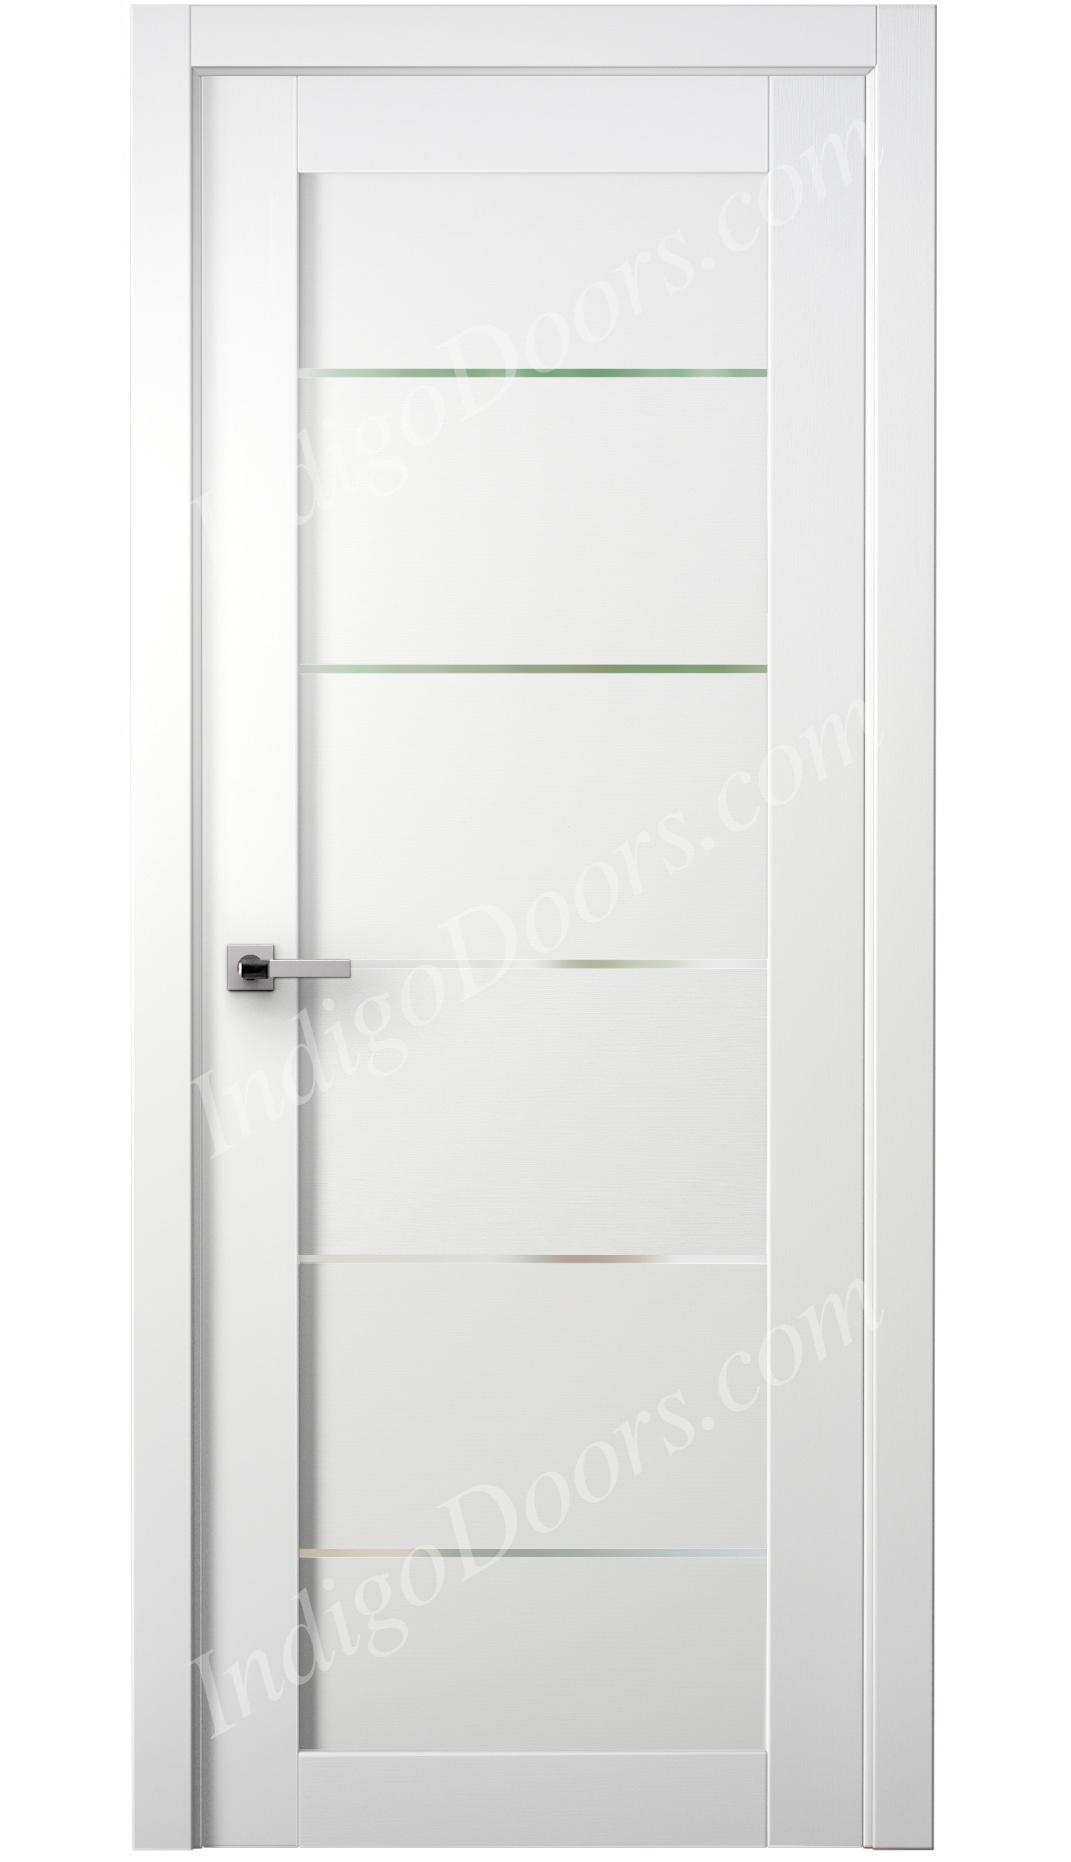 Image Tia Interior Door Bianco Noble/Frosted Glass 0